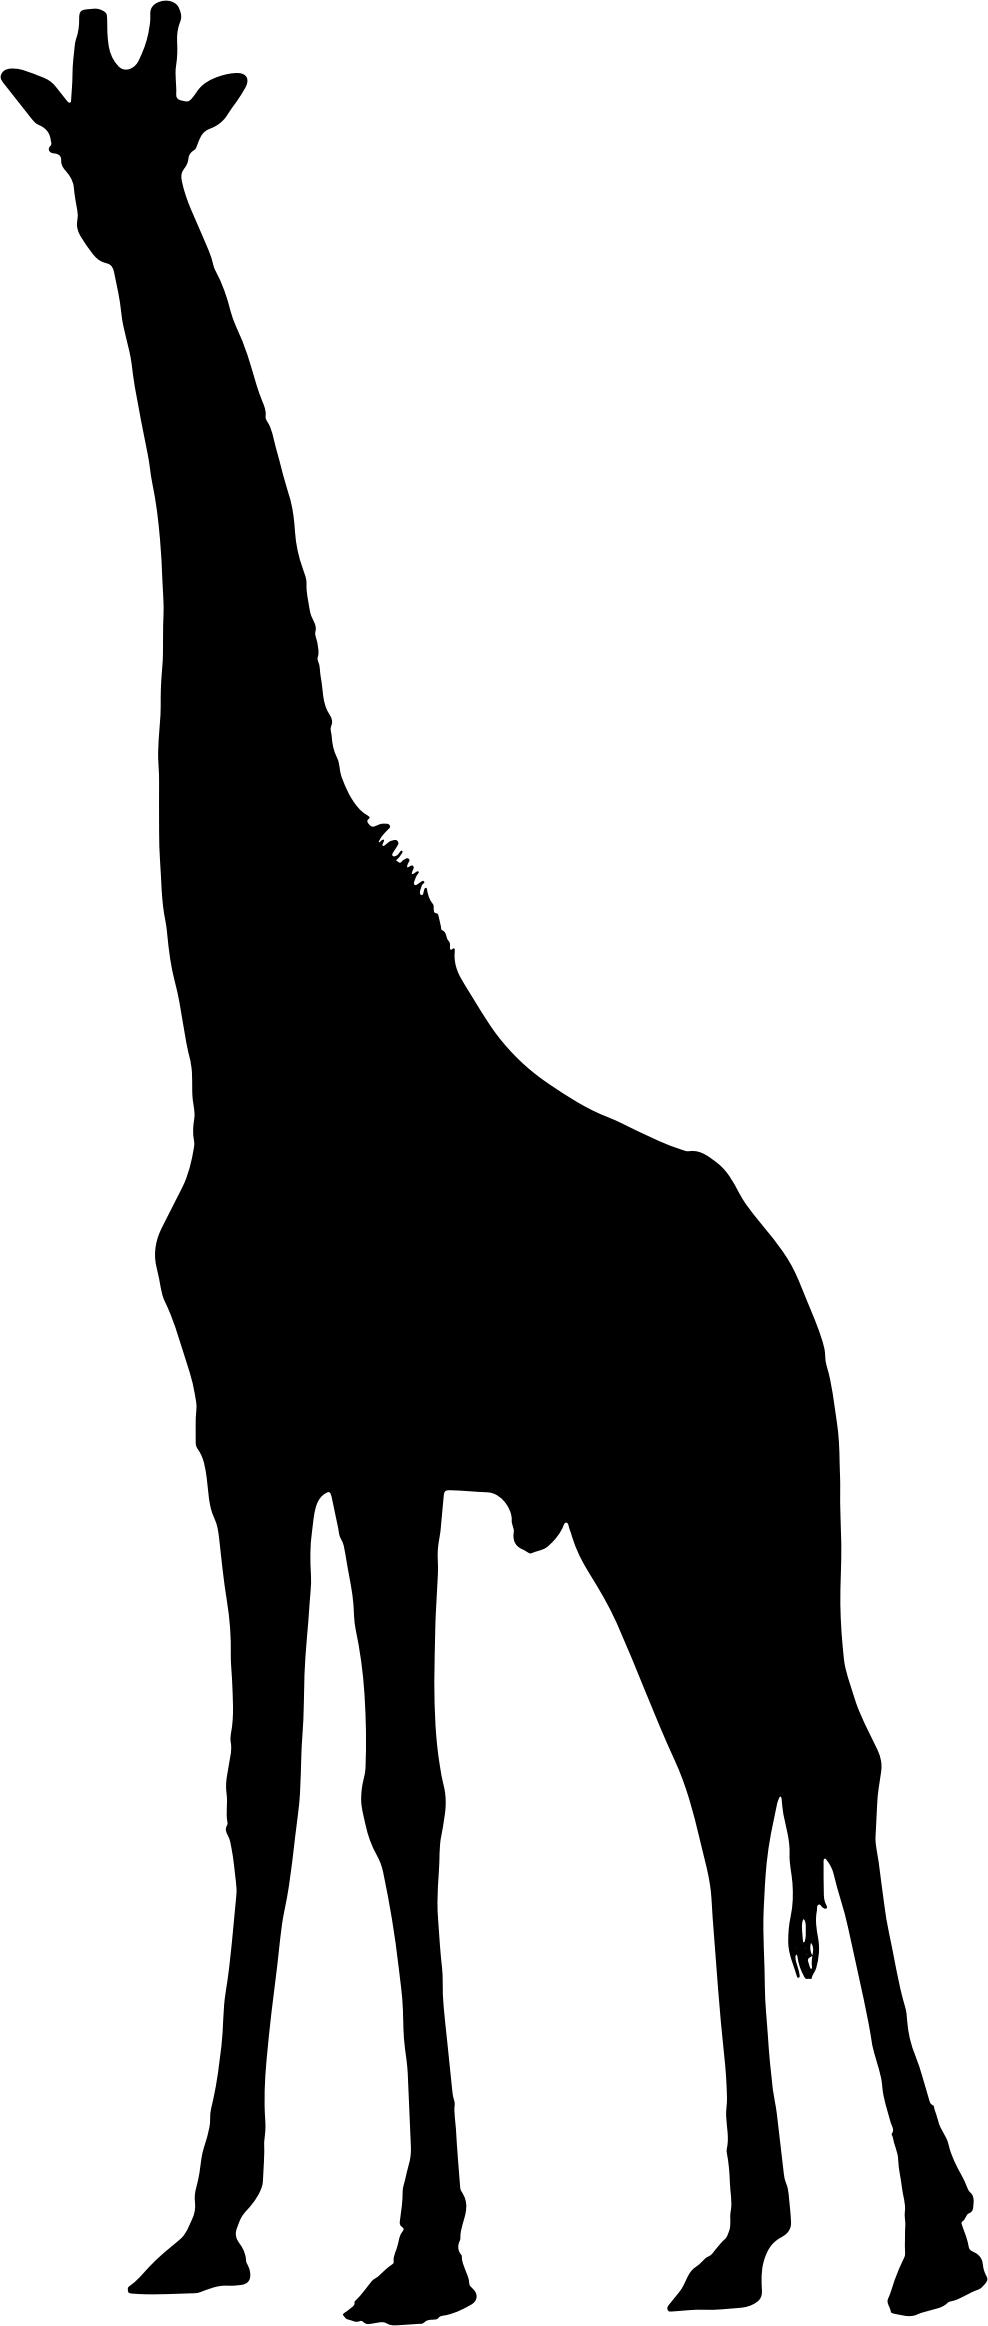 988x2326 Giraffe Silhouette 2 Icons Png